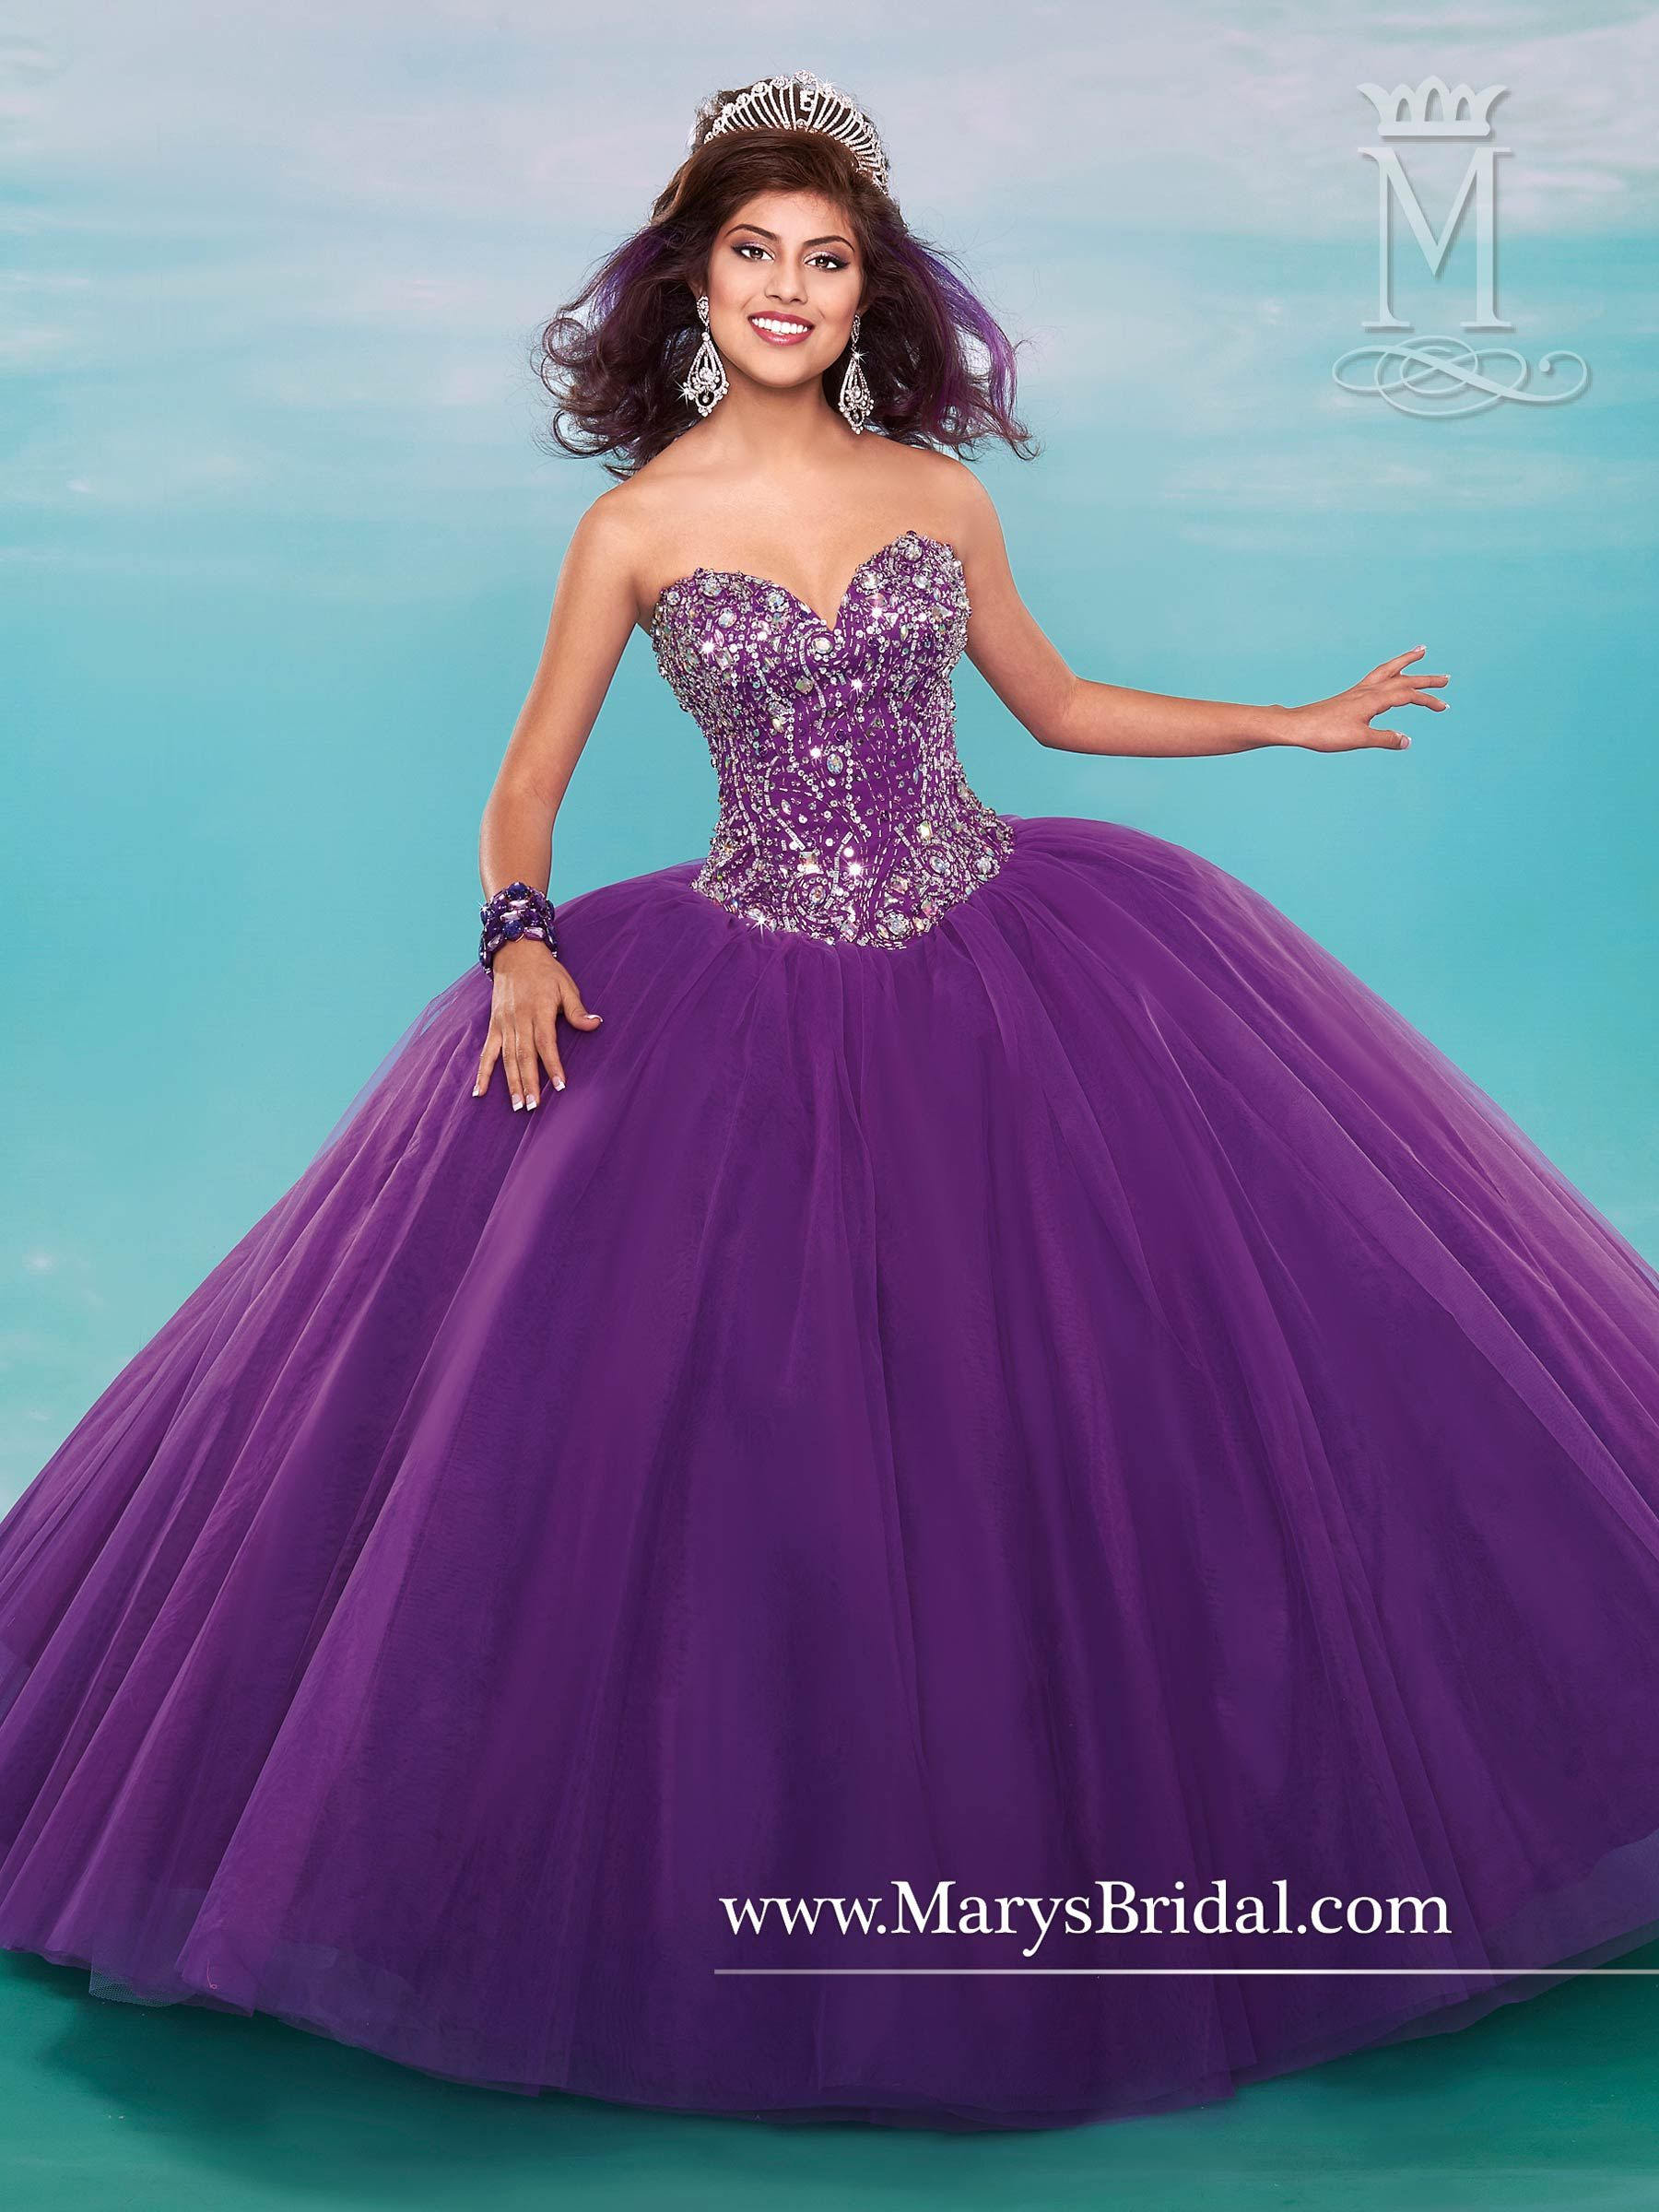 Pin by Clary Rivera on xv ideas Purple quinceanera